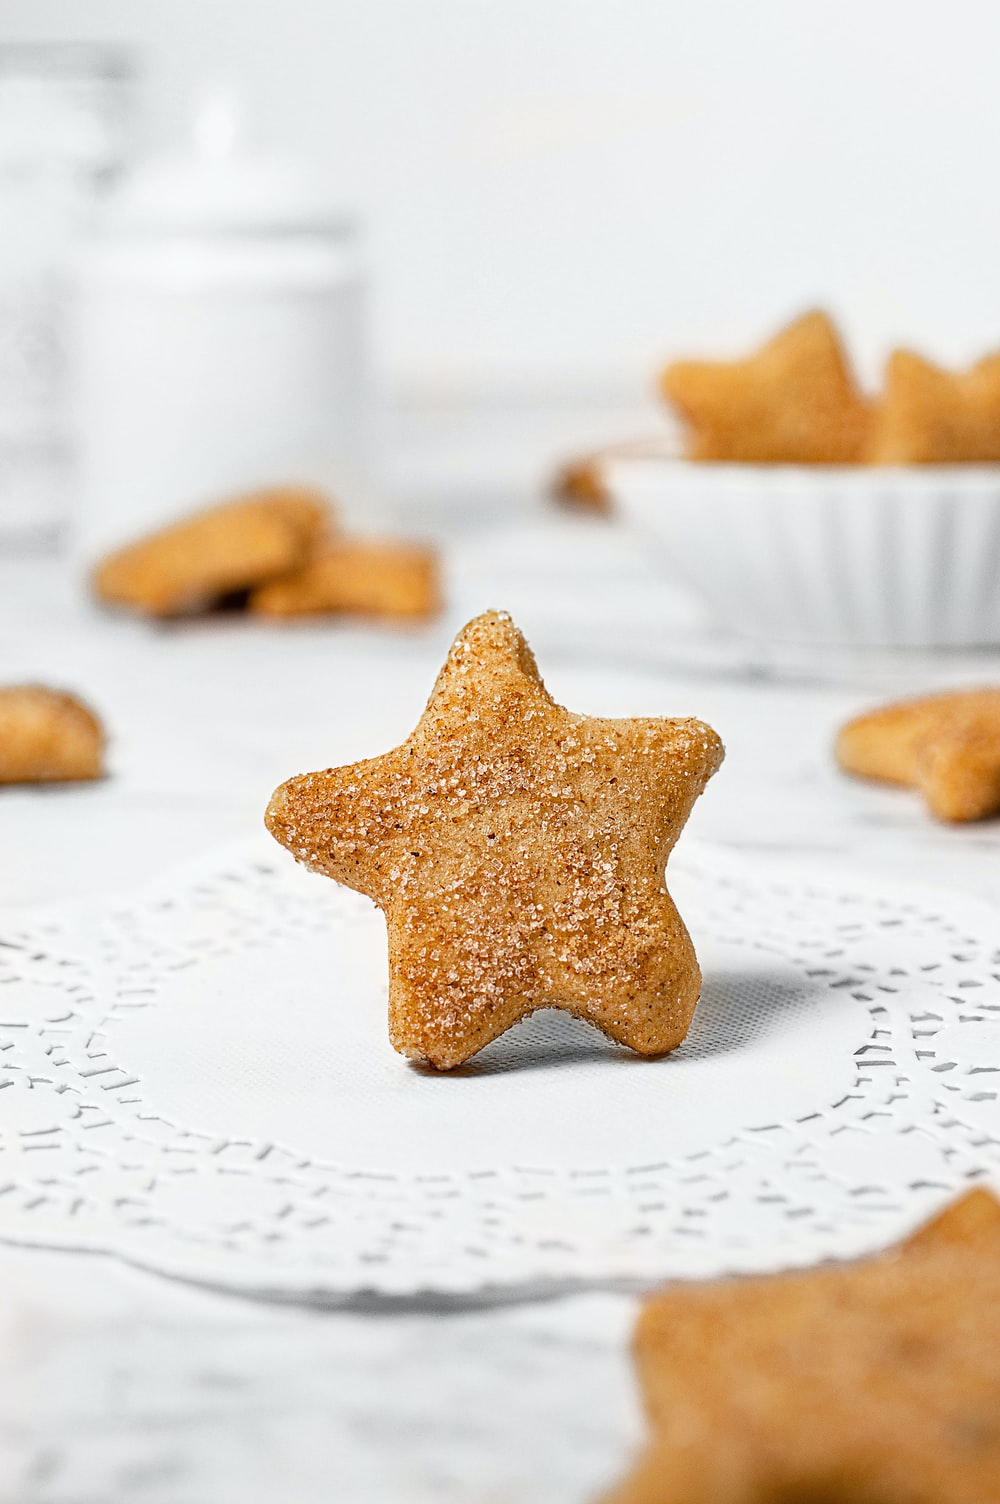 brown star shaped cookie on white table